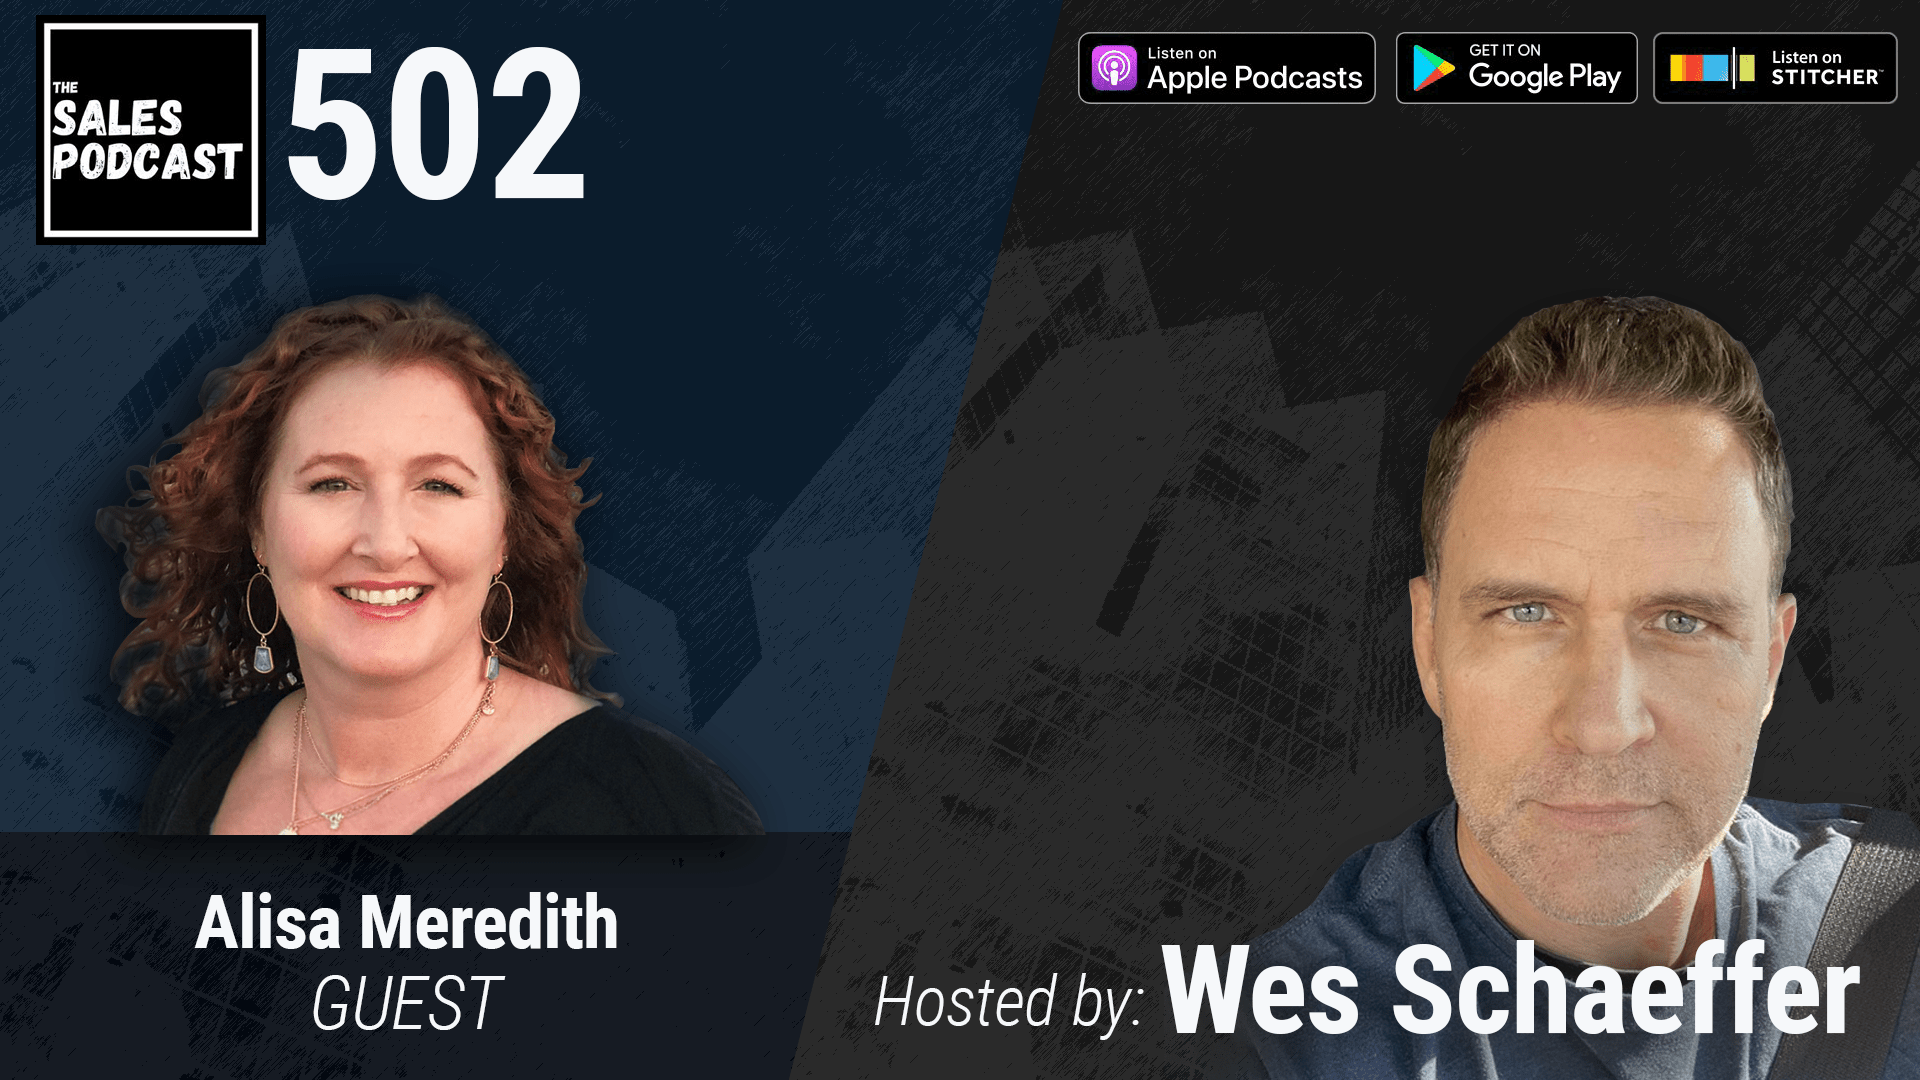 Produce Predictable Profits With Pinterest and Alisa Meredith on The Sales Podcast with Wes Schaeffer, The Sales Whisperer®